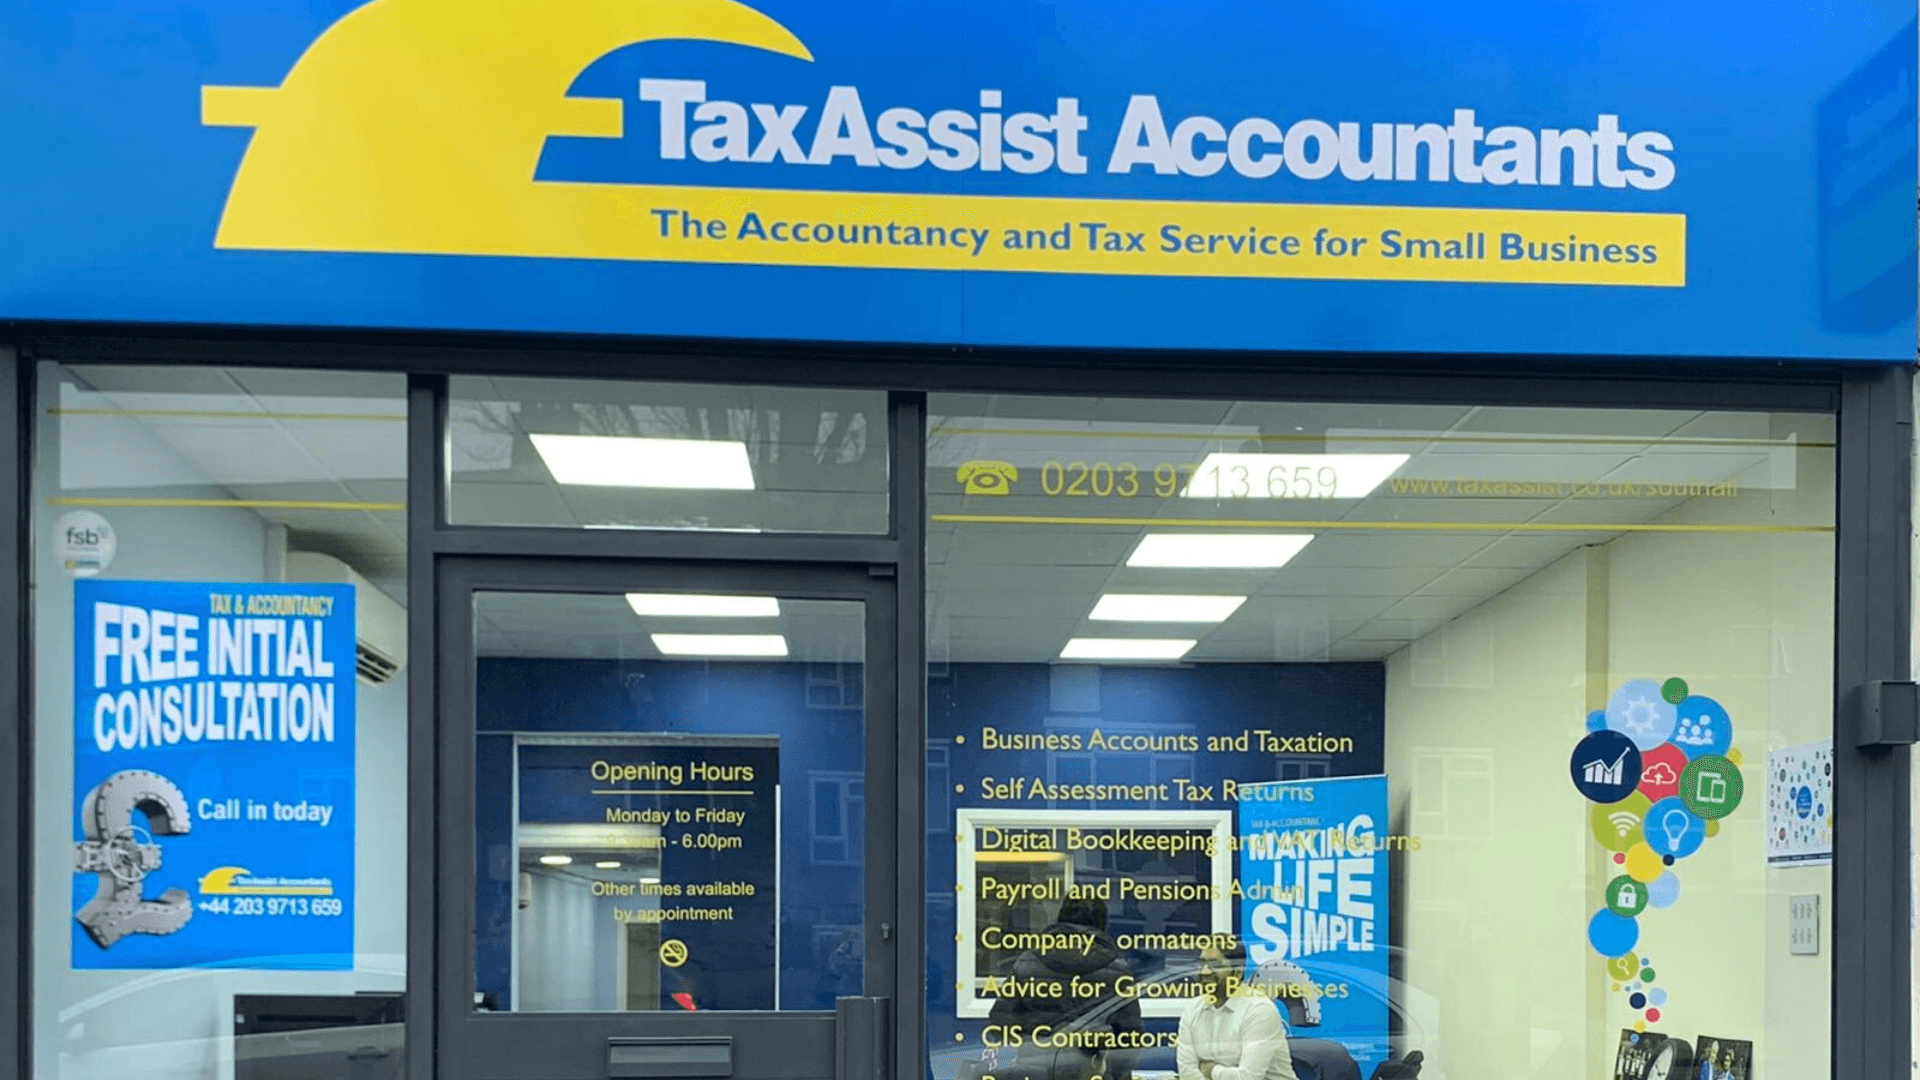 New TaxAssist Accountants shop opens in Southall